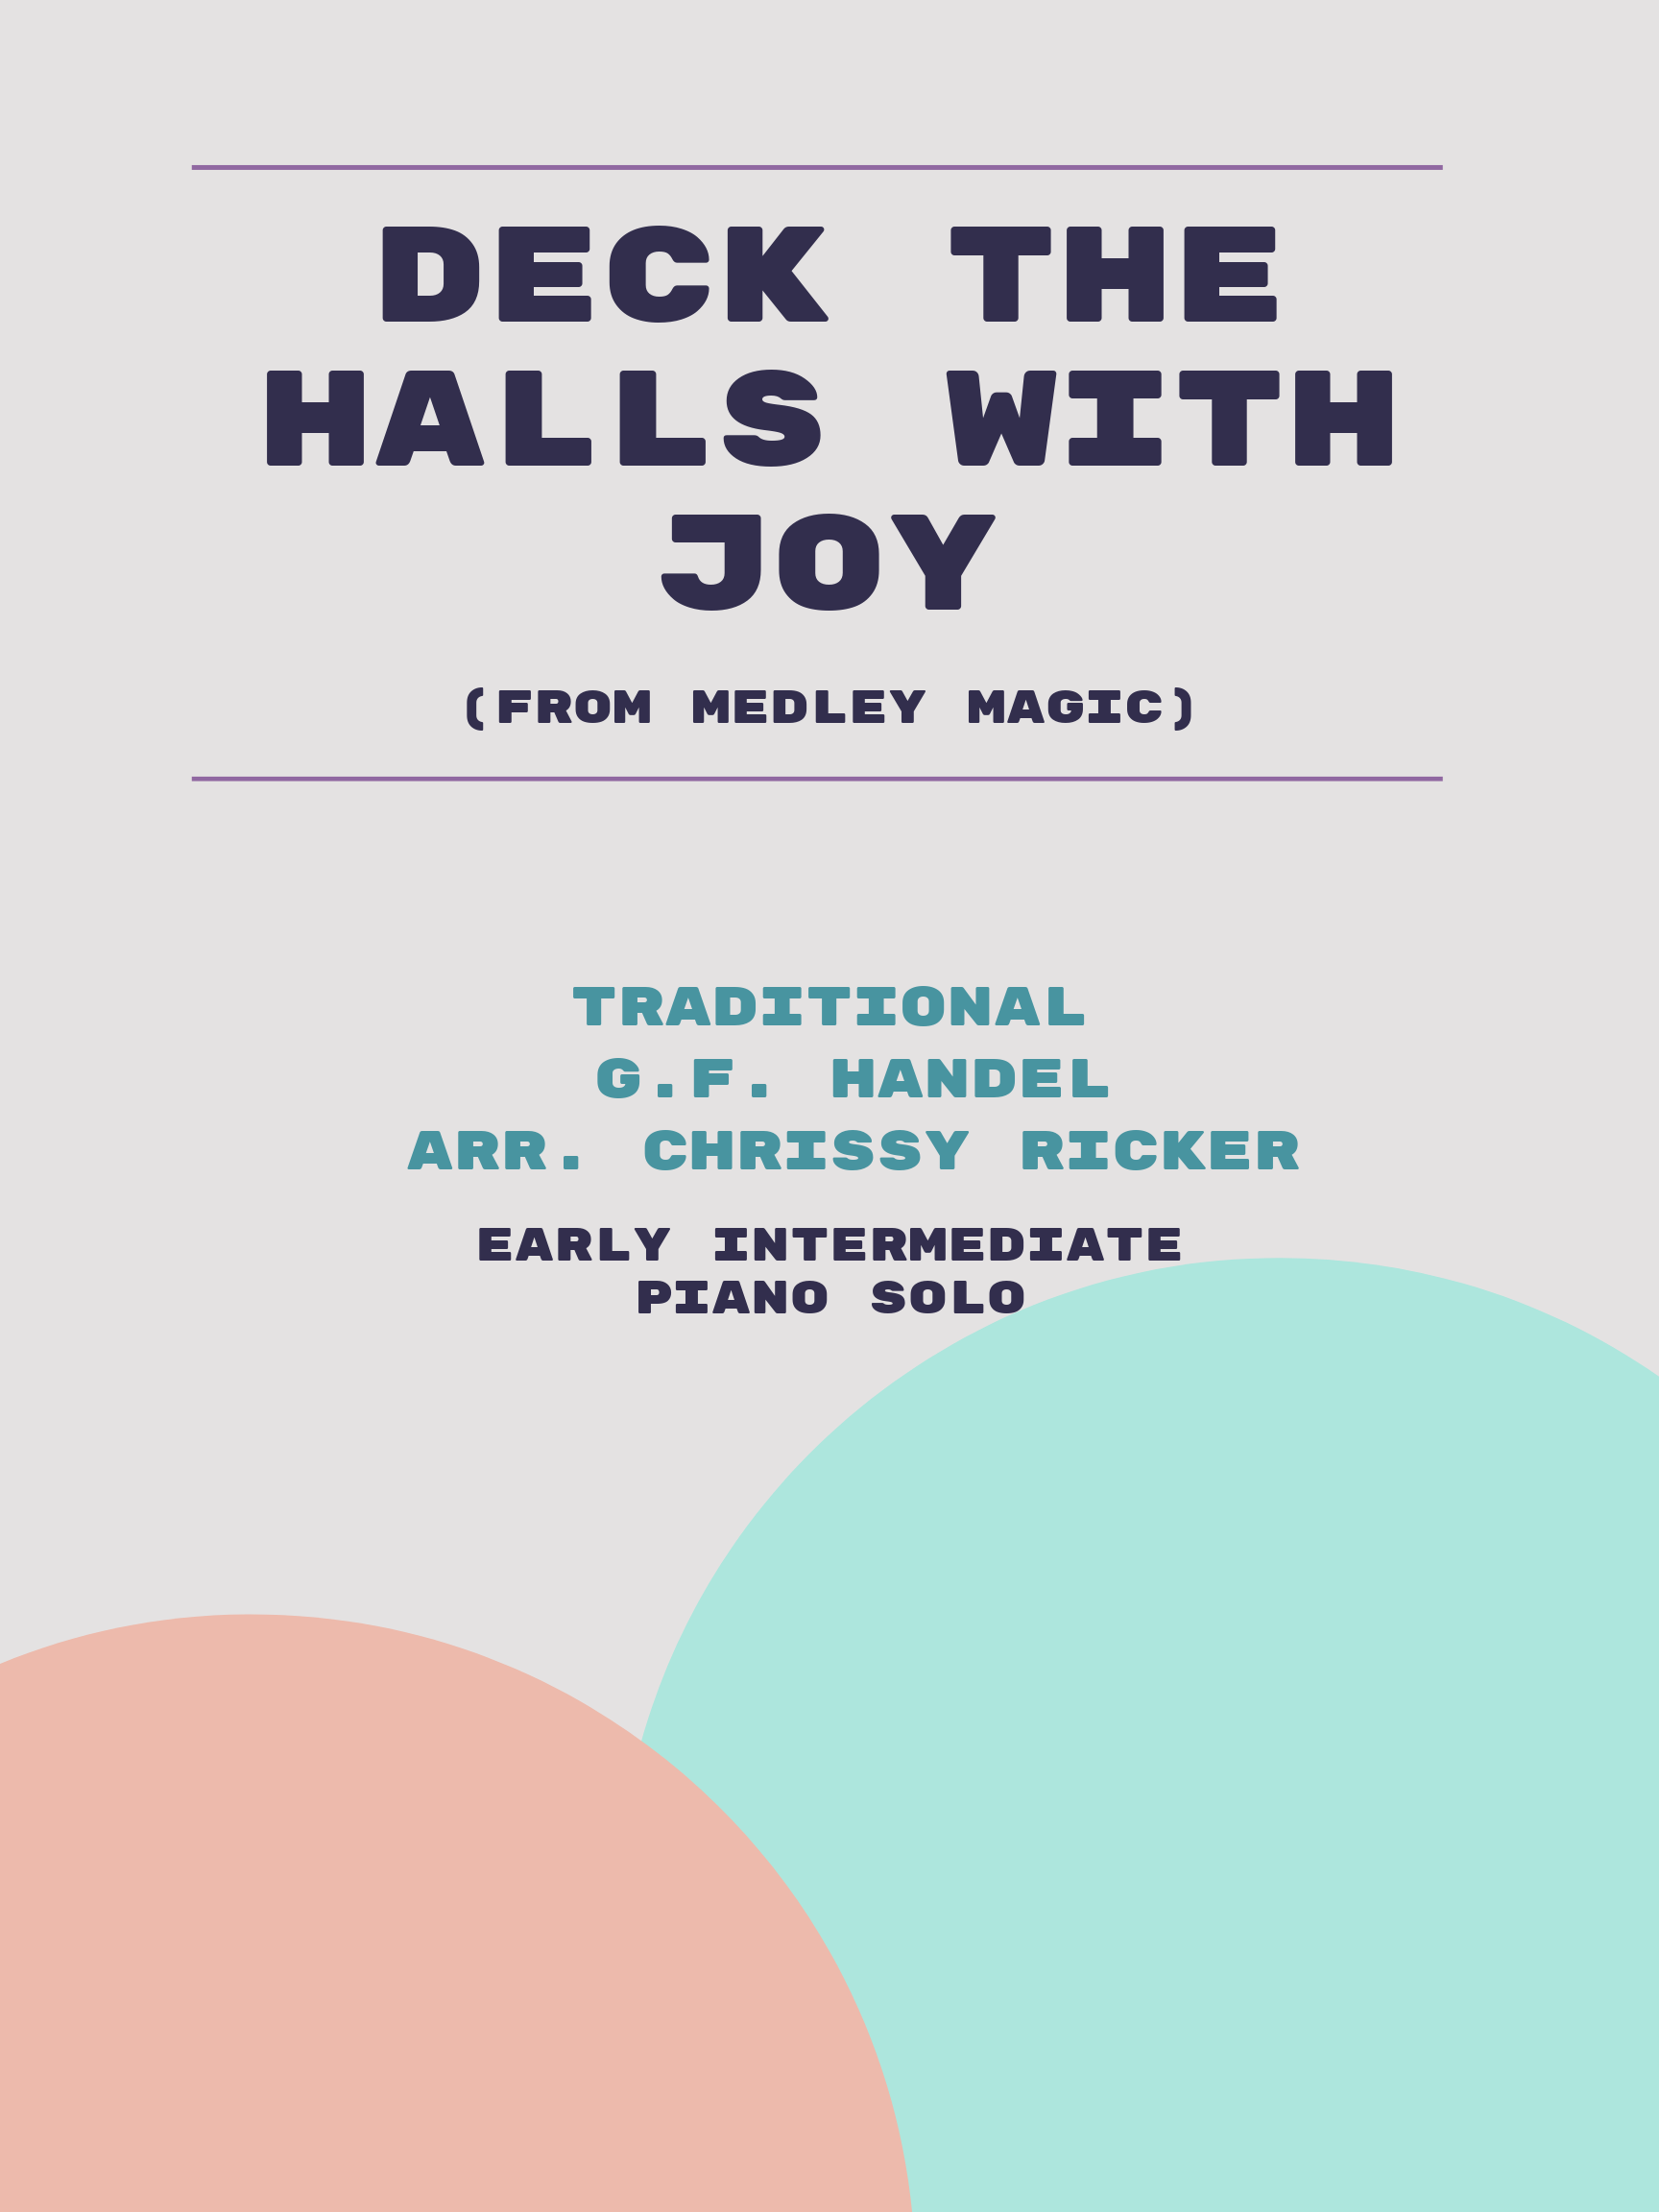 Deck the Halls with Joy by G.F. Handel, Traditional